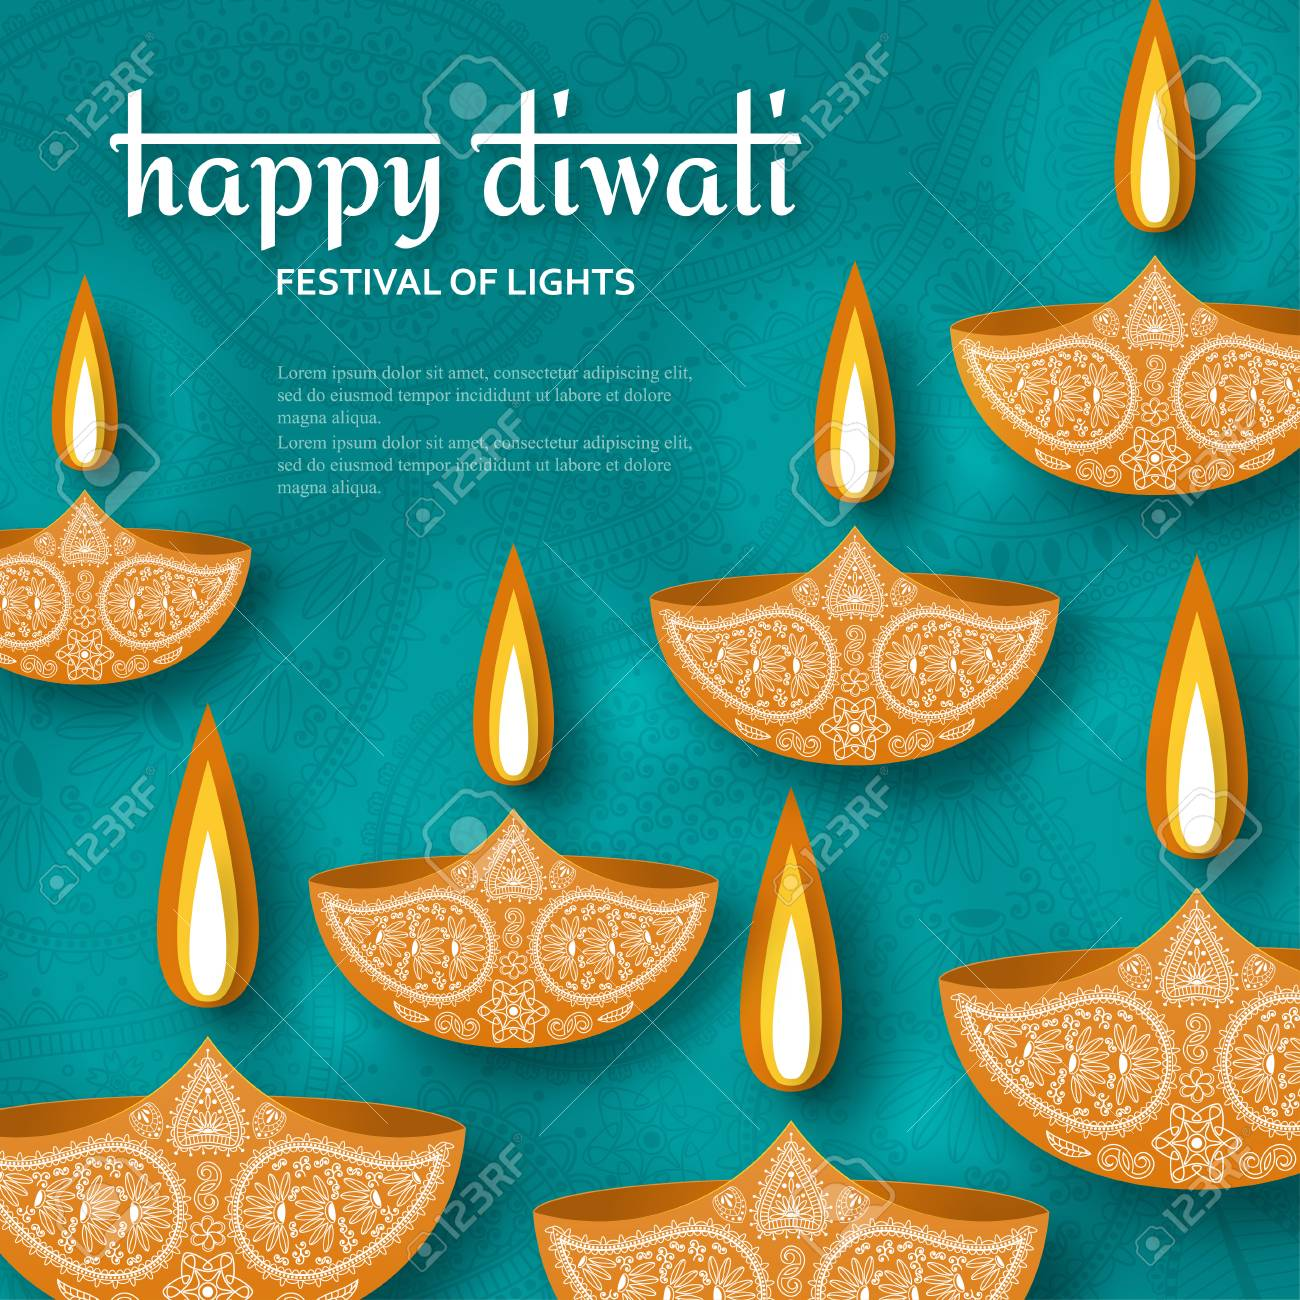 Greeting card for diwali festival celebration in india vector greeting card for diwali festival celebration in india vector illustration stock vector 86633313 kristyandbryce Images